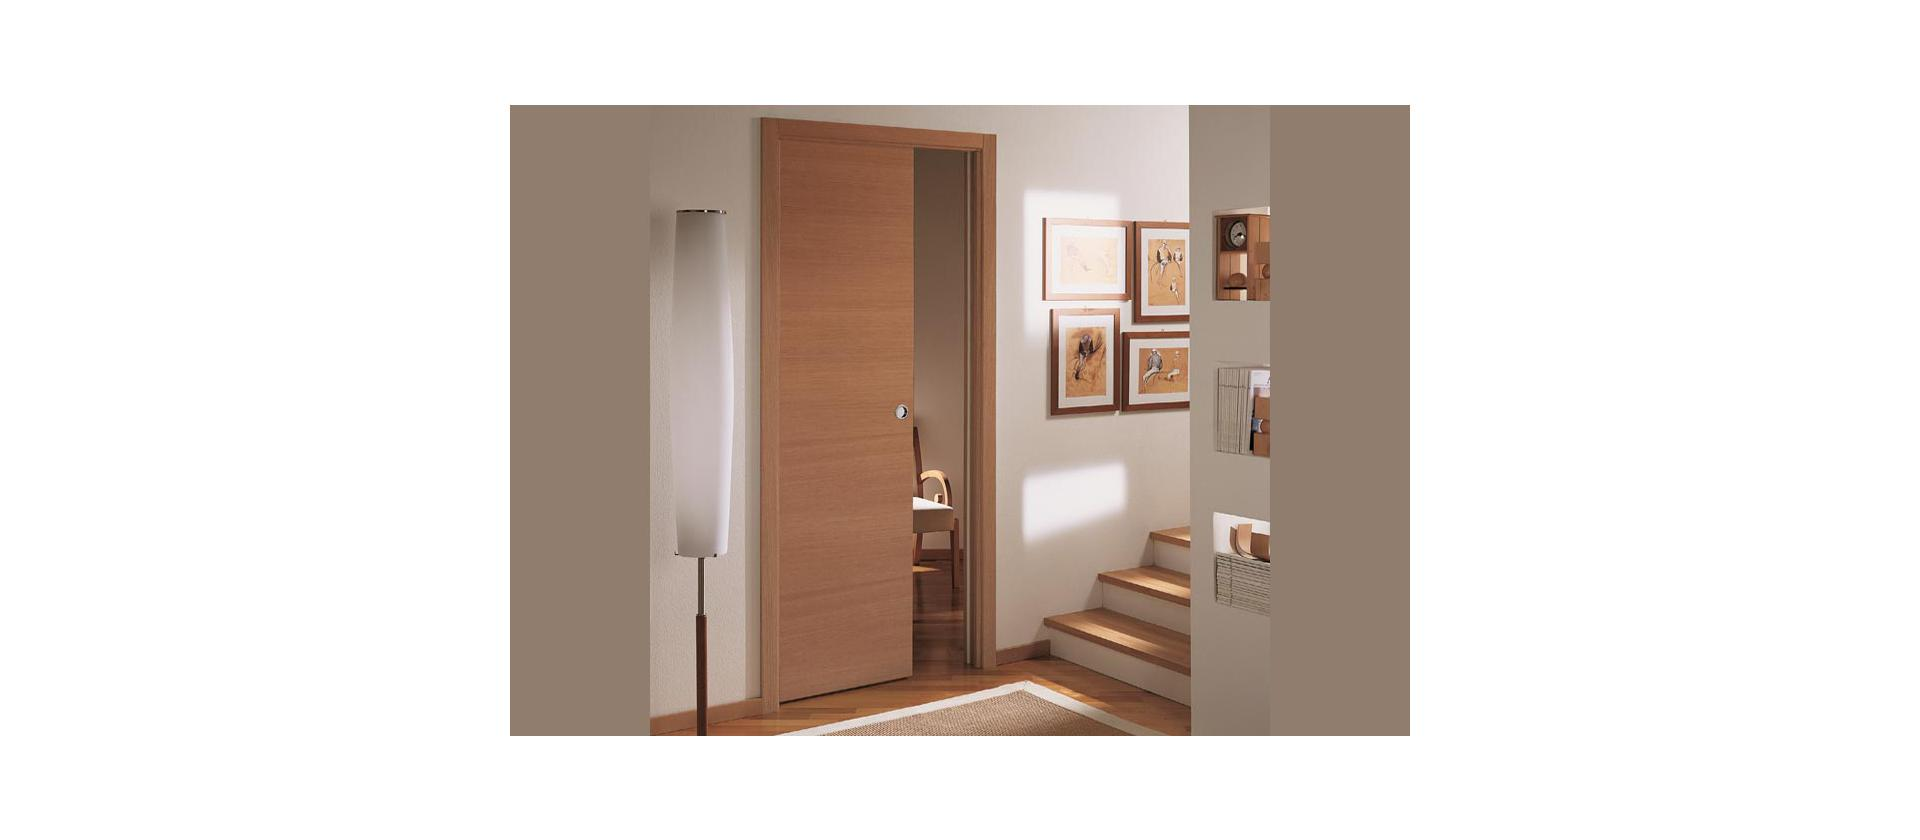 SLIDING WOODEN DOORS COCIF big